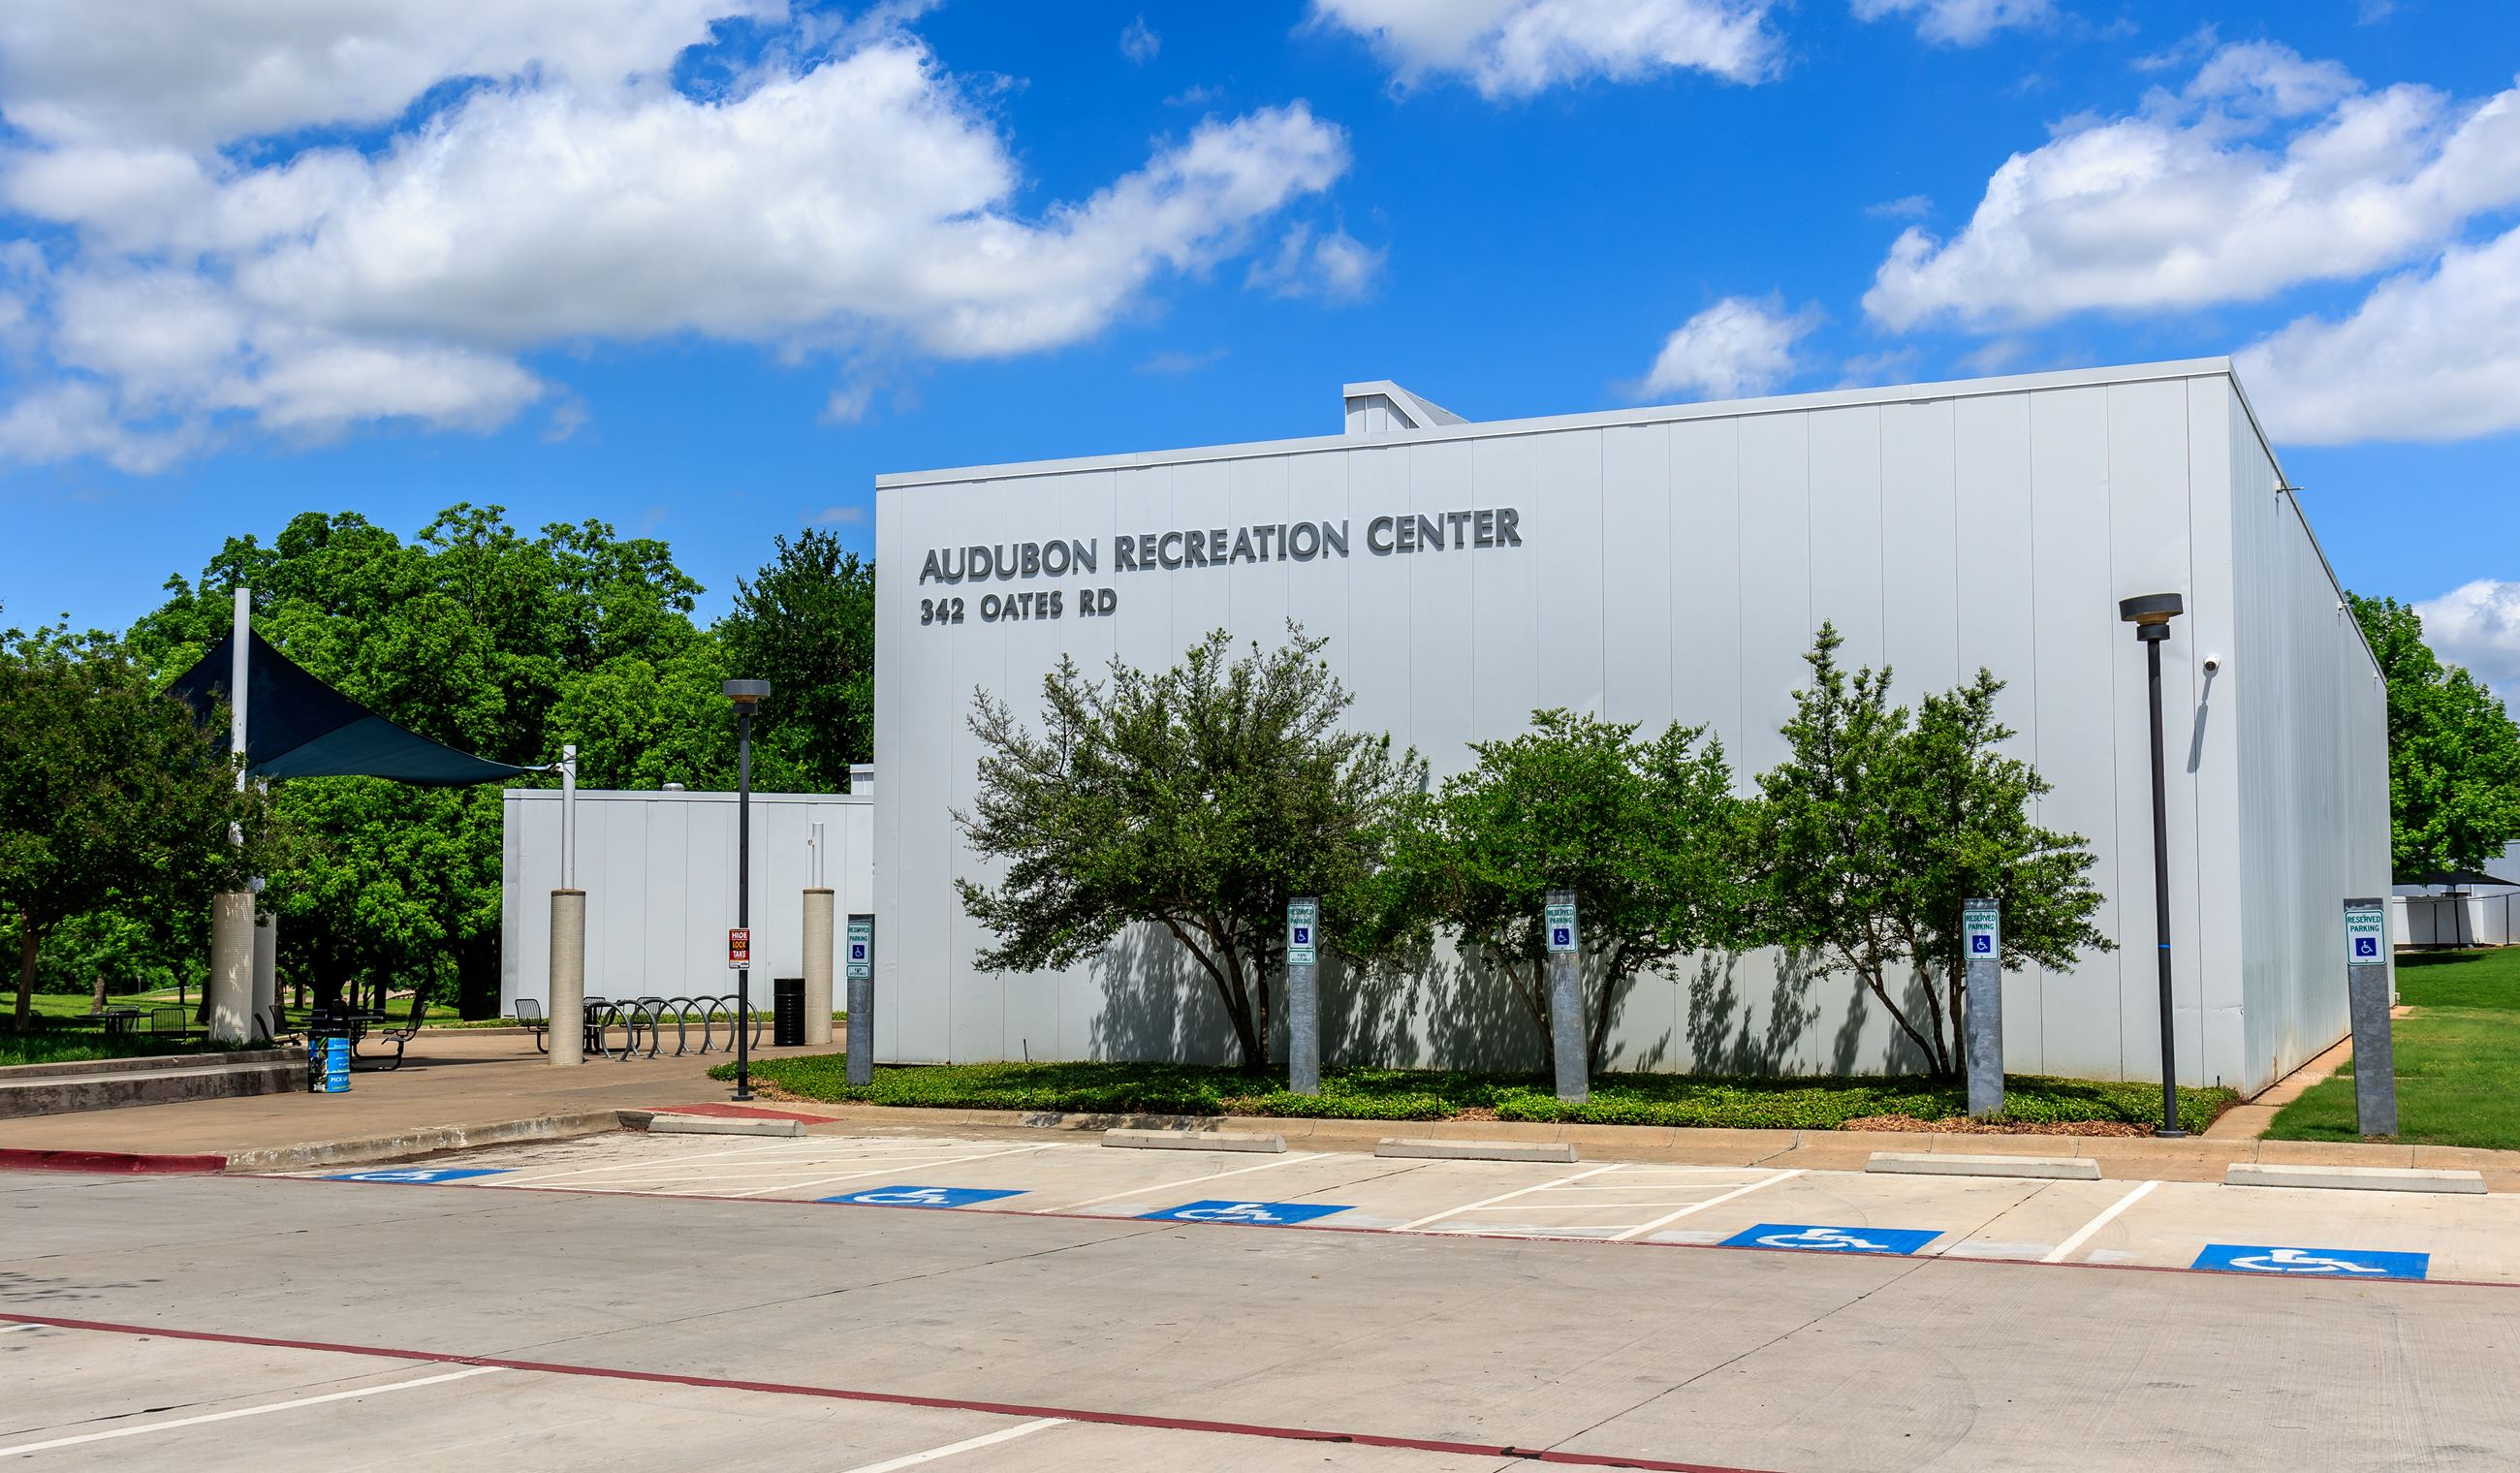 Audubon Recreation Center